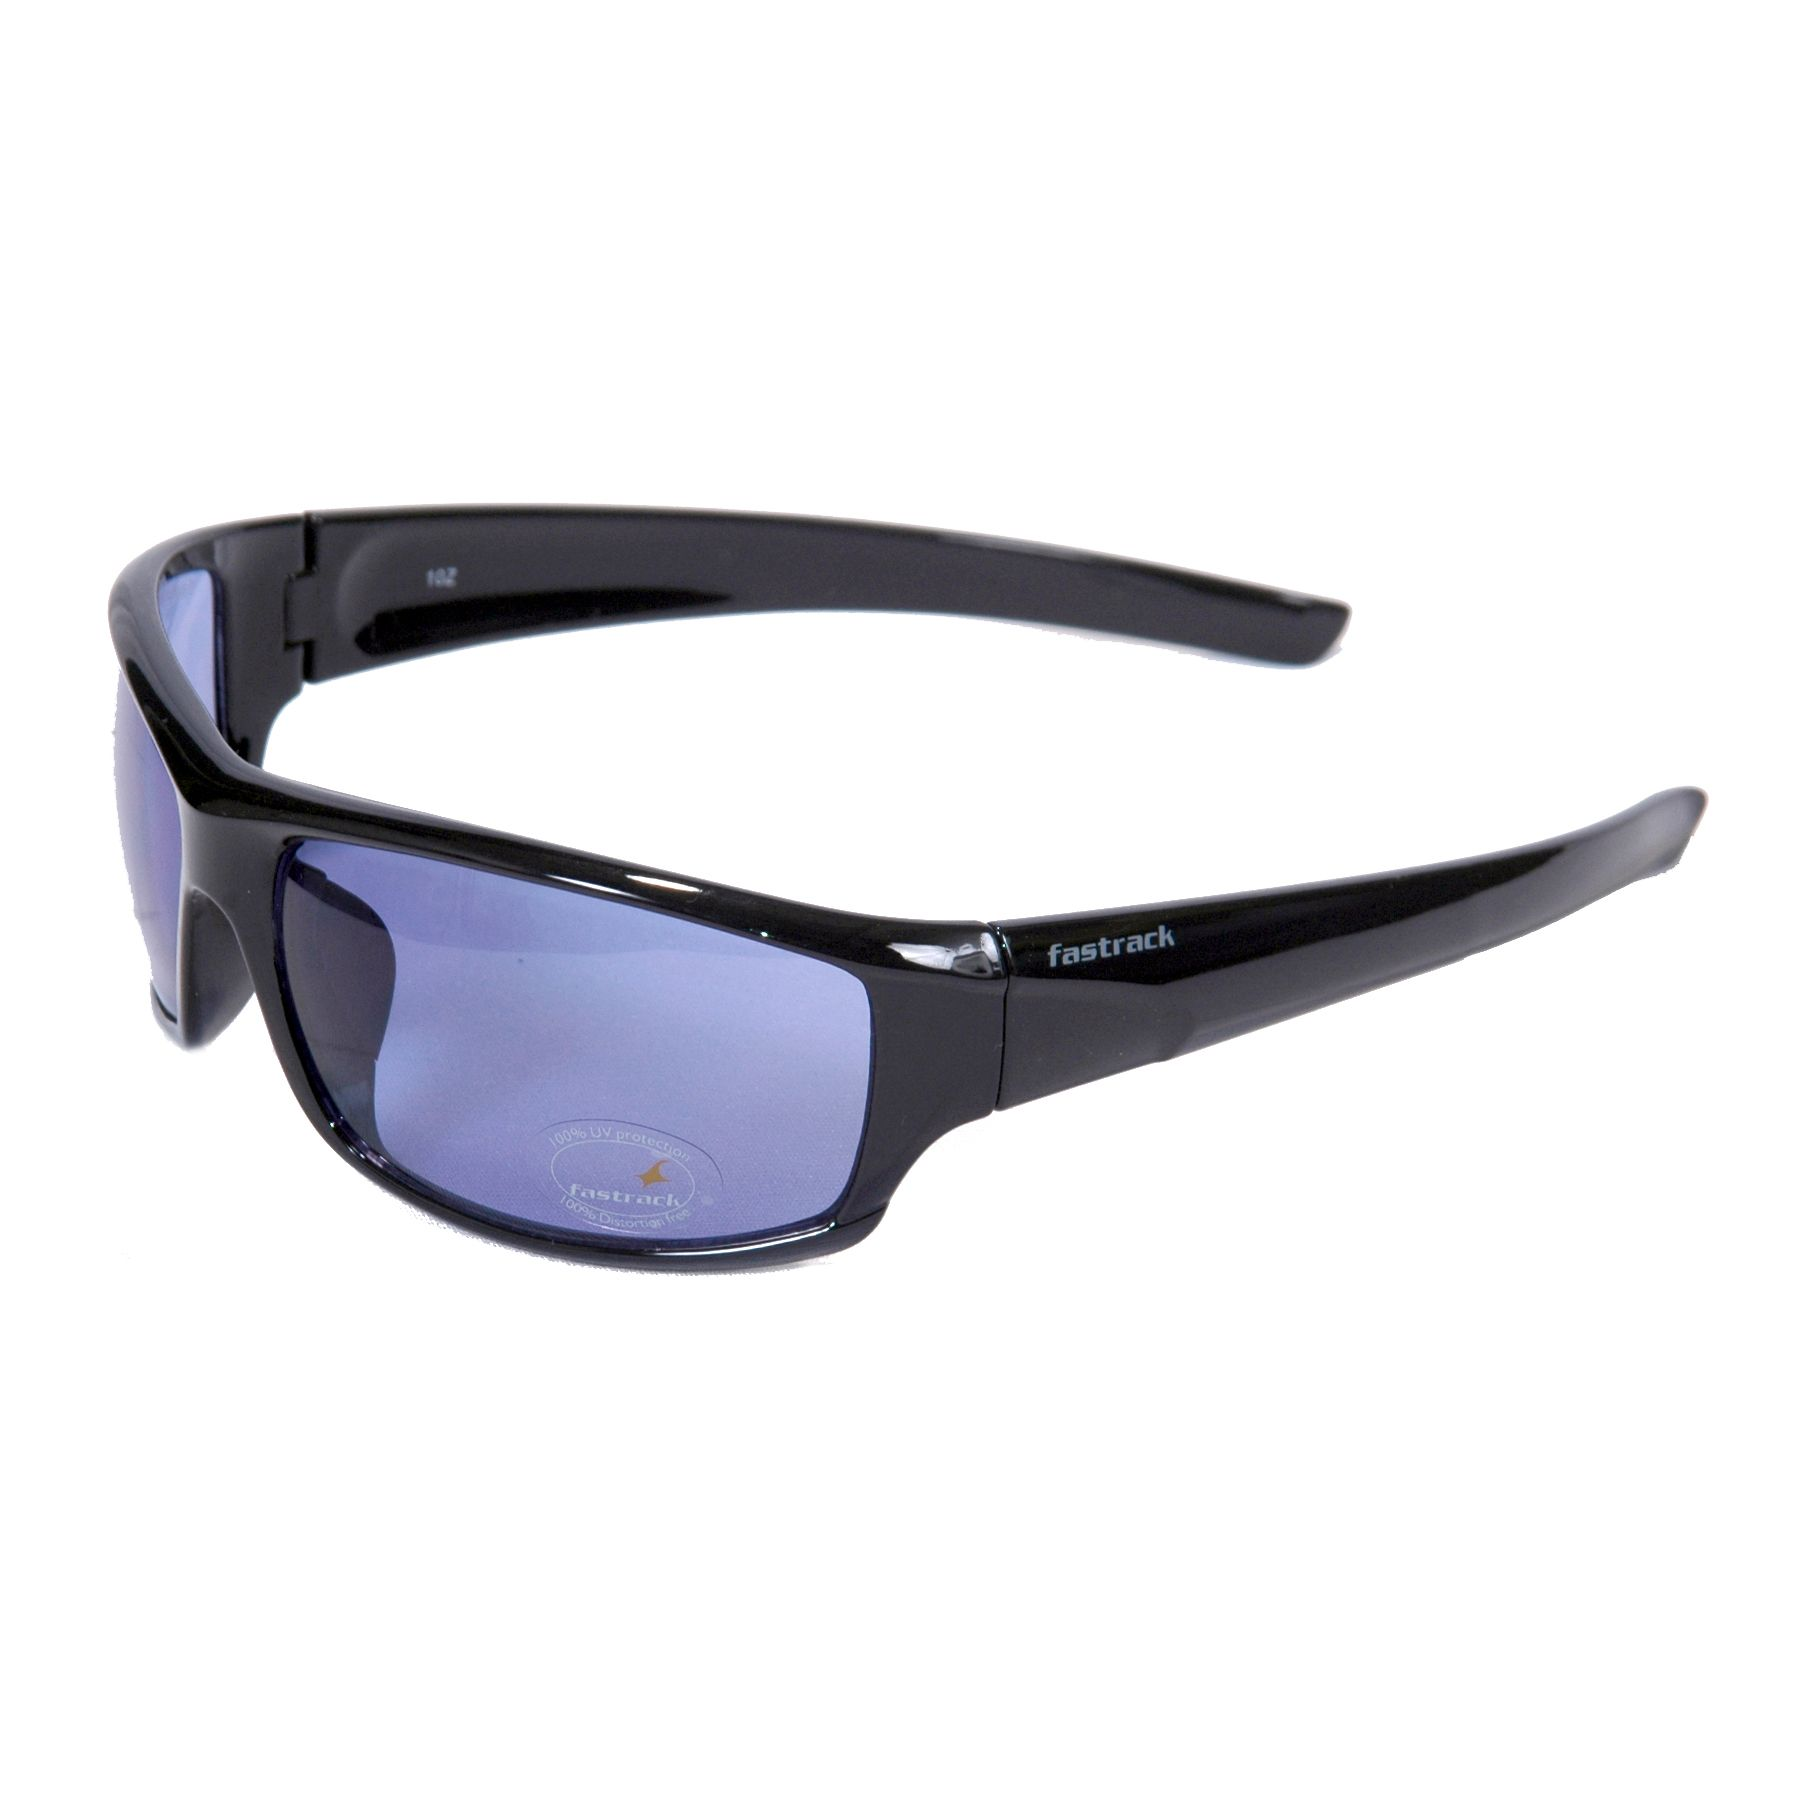 60bc2abfc9b Fastrack P223BU2 Black Blue Sunglasses The full rim frame has integrated  nose pads and well shaped temples which provide comfortable wearing  experience.